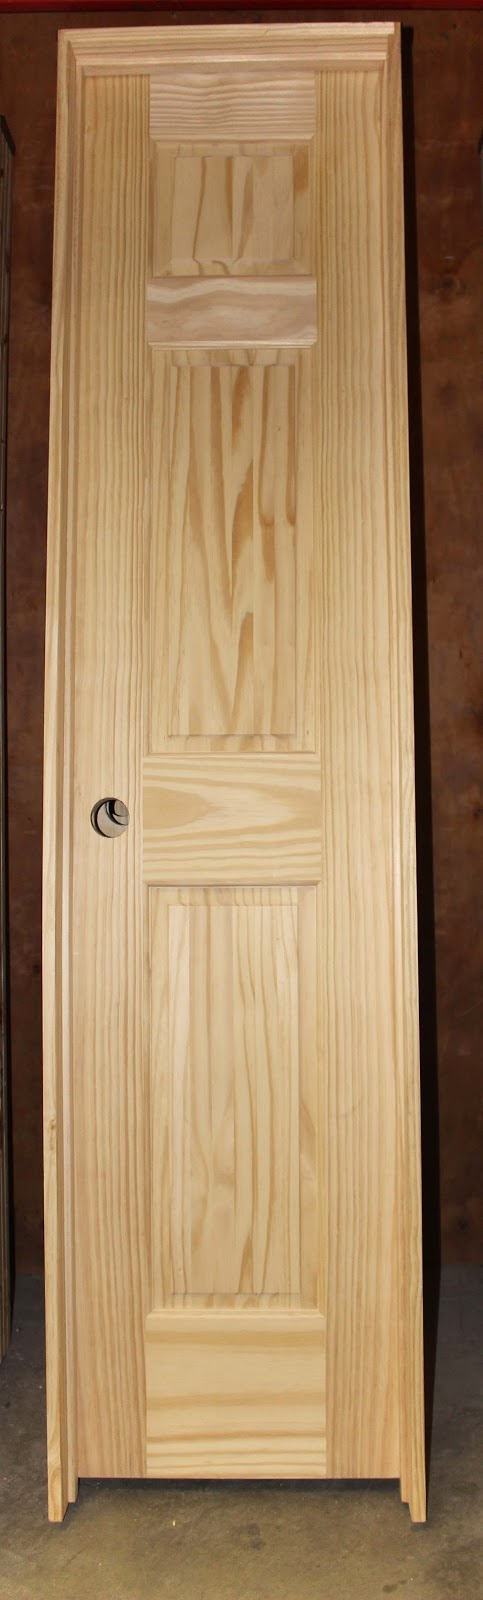 Selecting prehung interior doors ellecrafts for Prehung interior doors